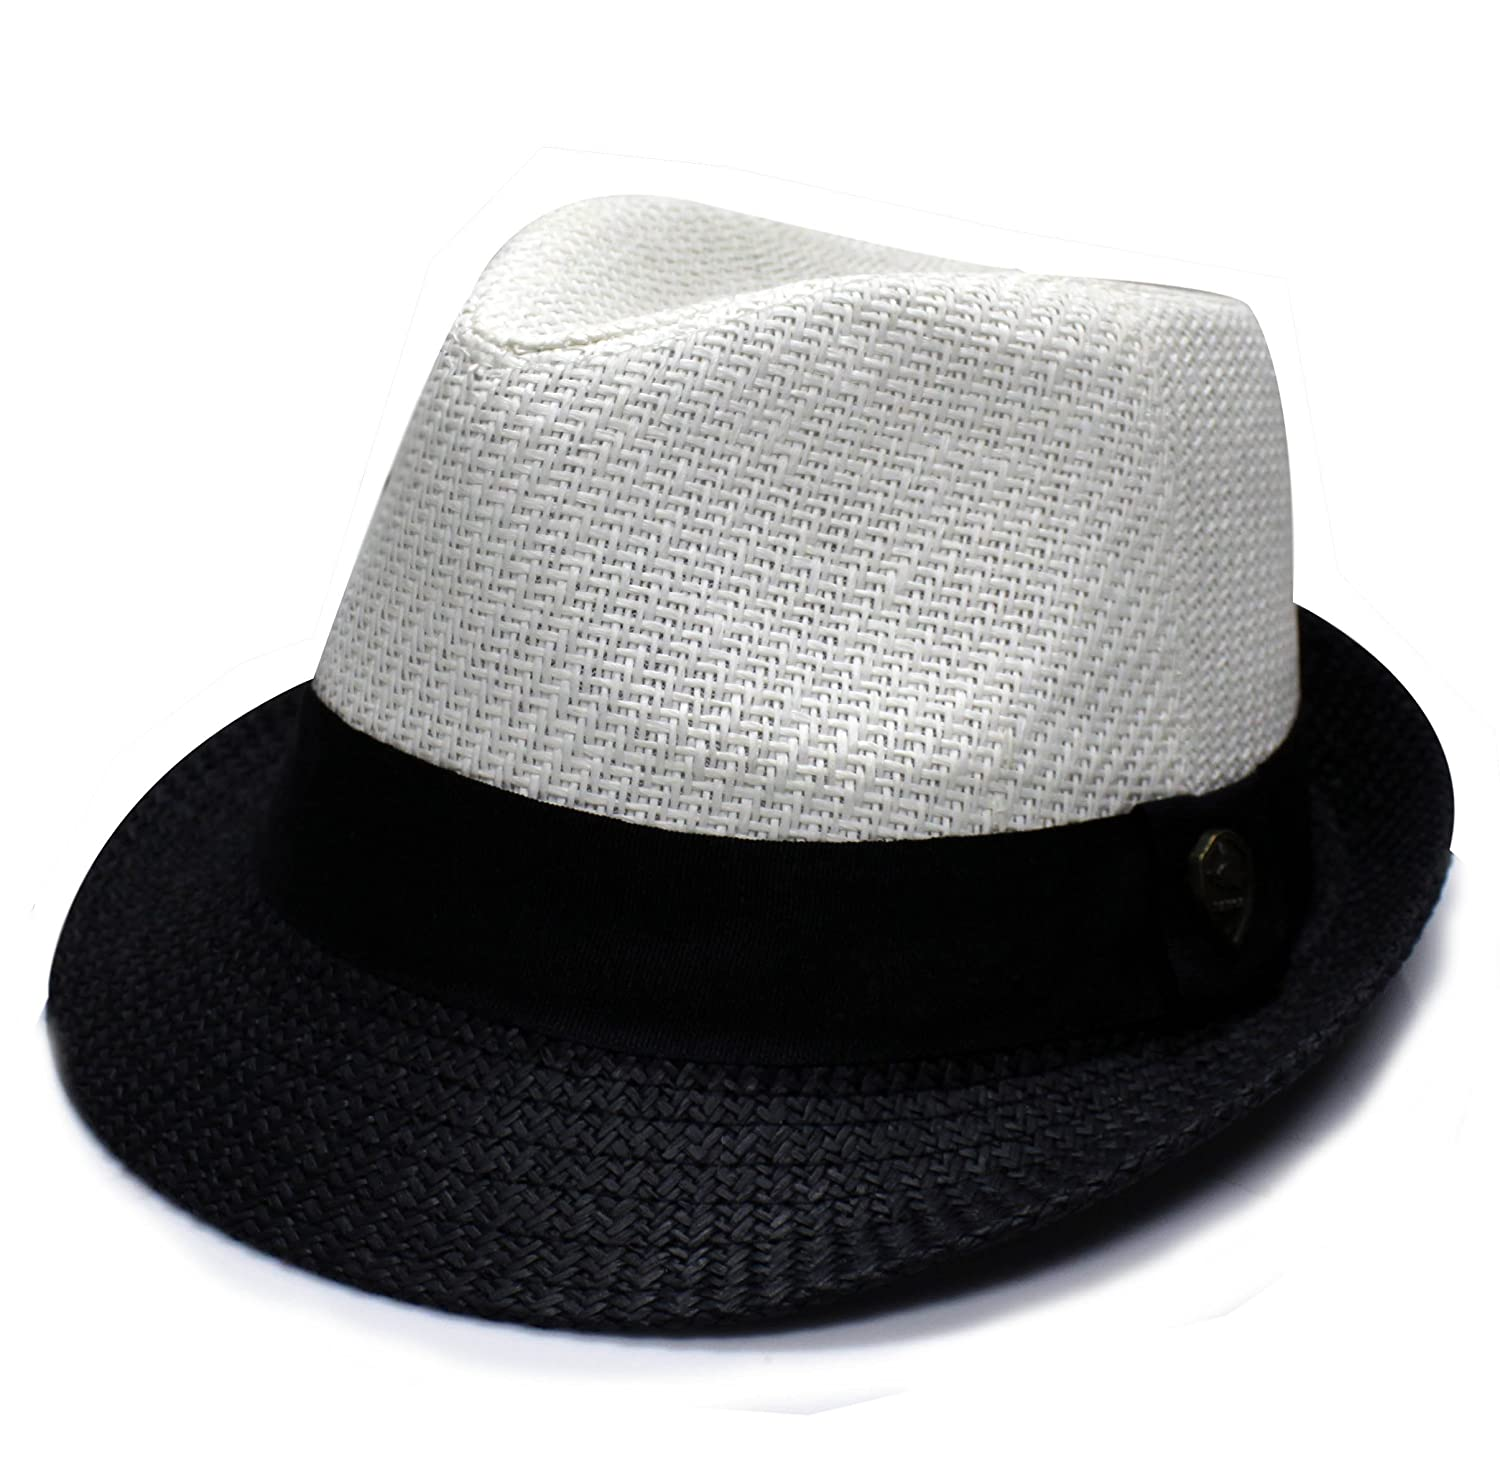 e82a4b24df3be City Hunter Pms390 Unisex Two Tone Summer Straw Fedora Hat - 3 Colors